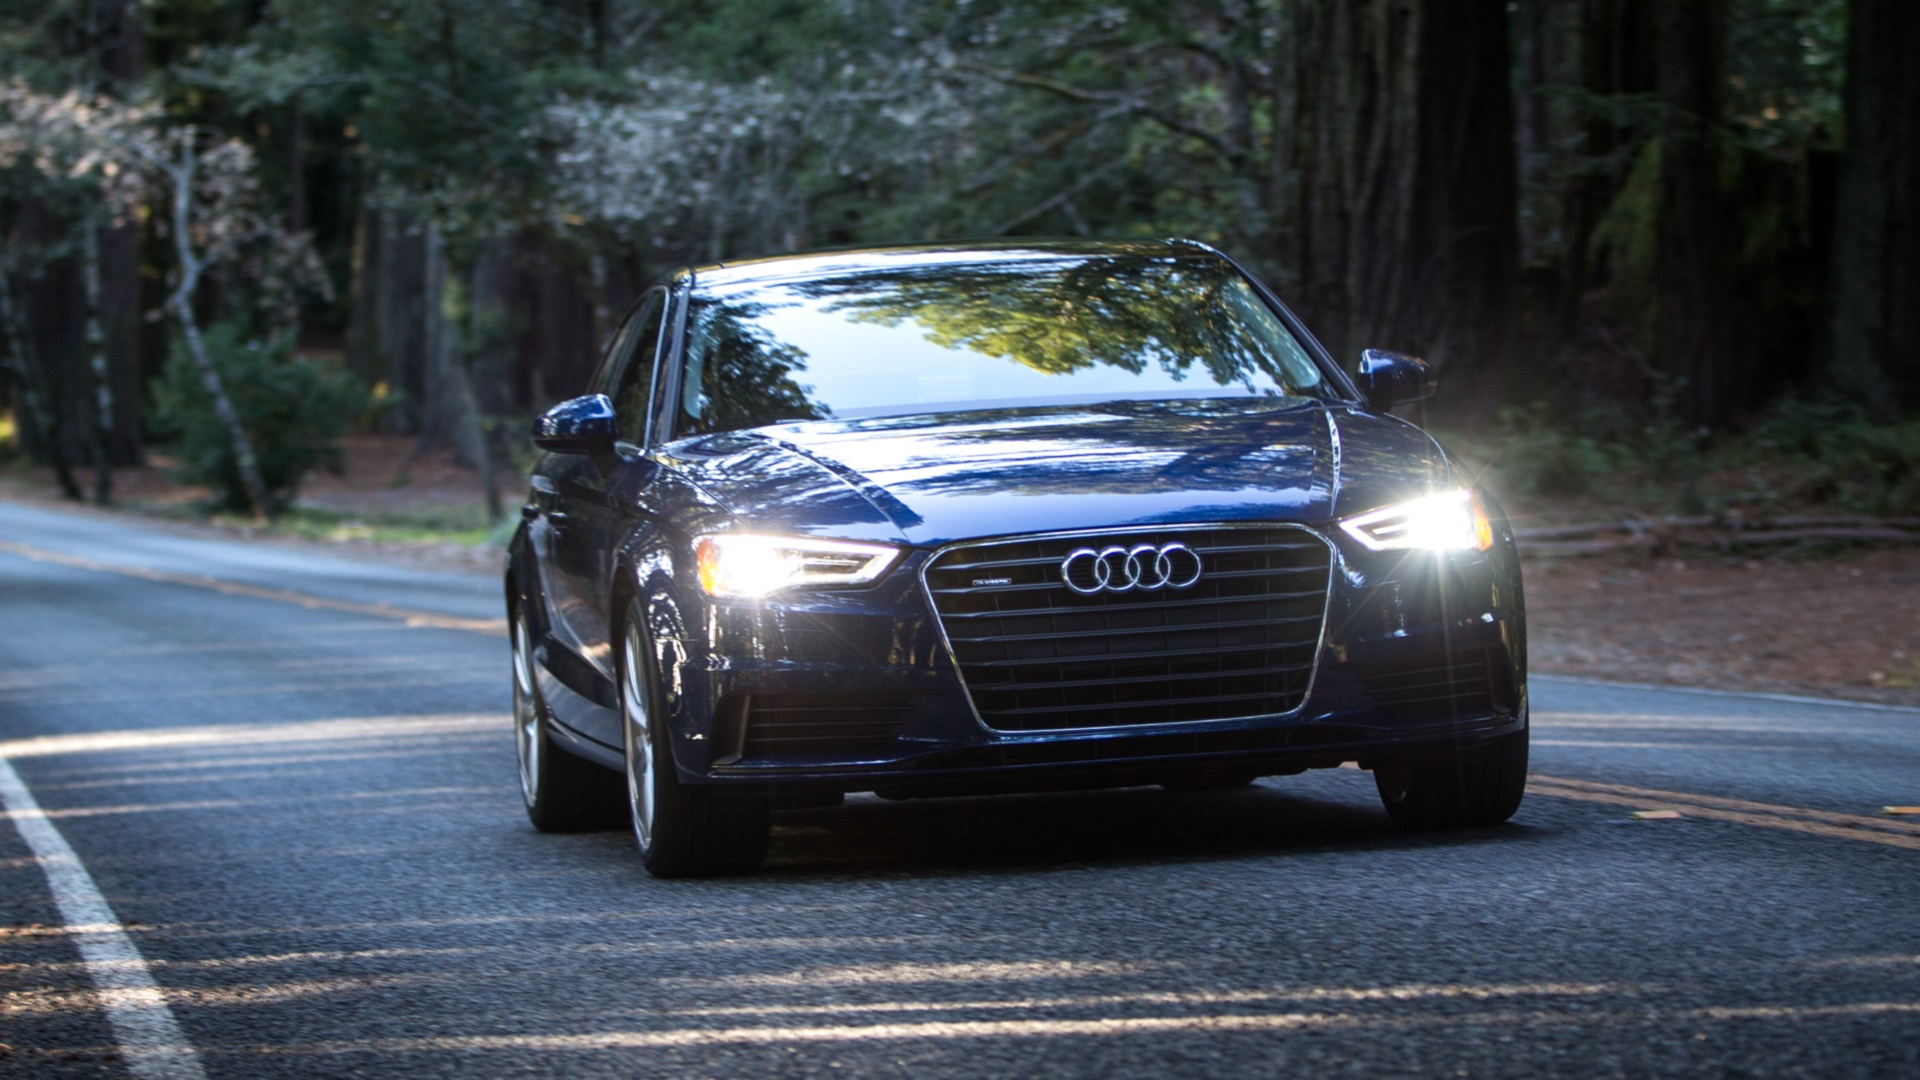 Audi A3 Wallpapers Pictures Images